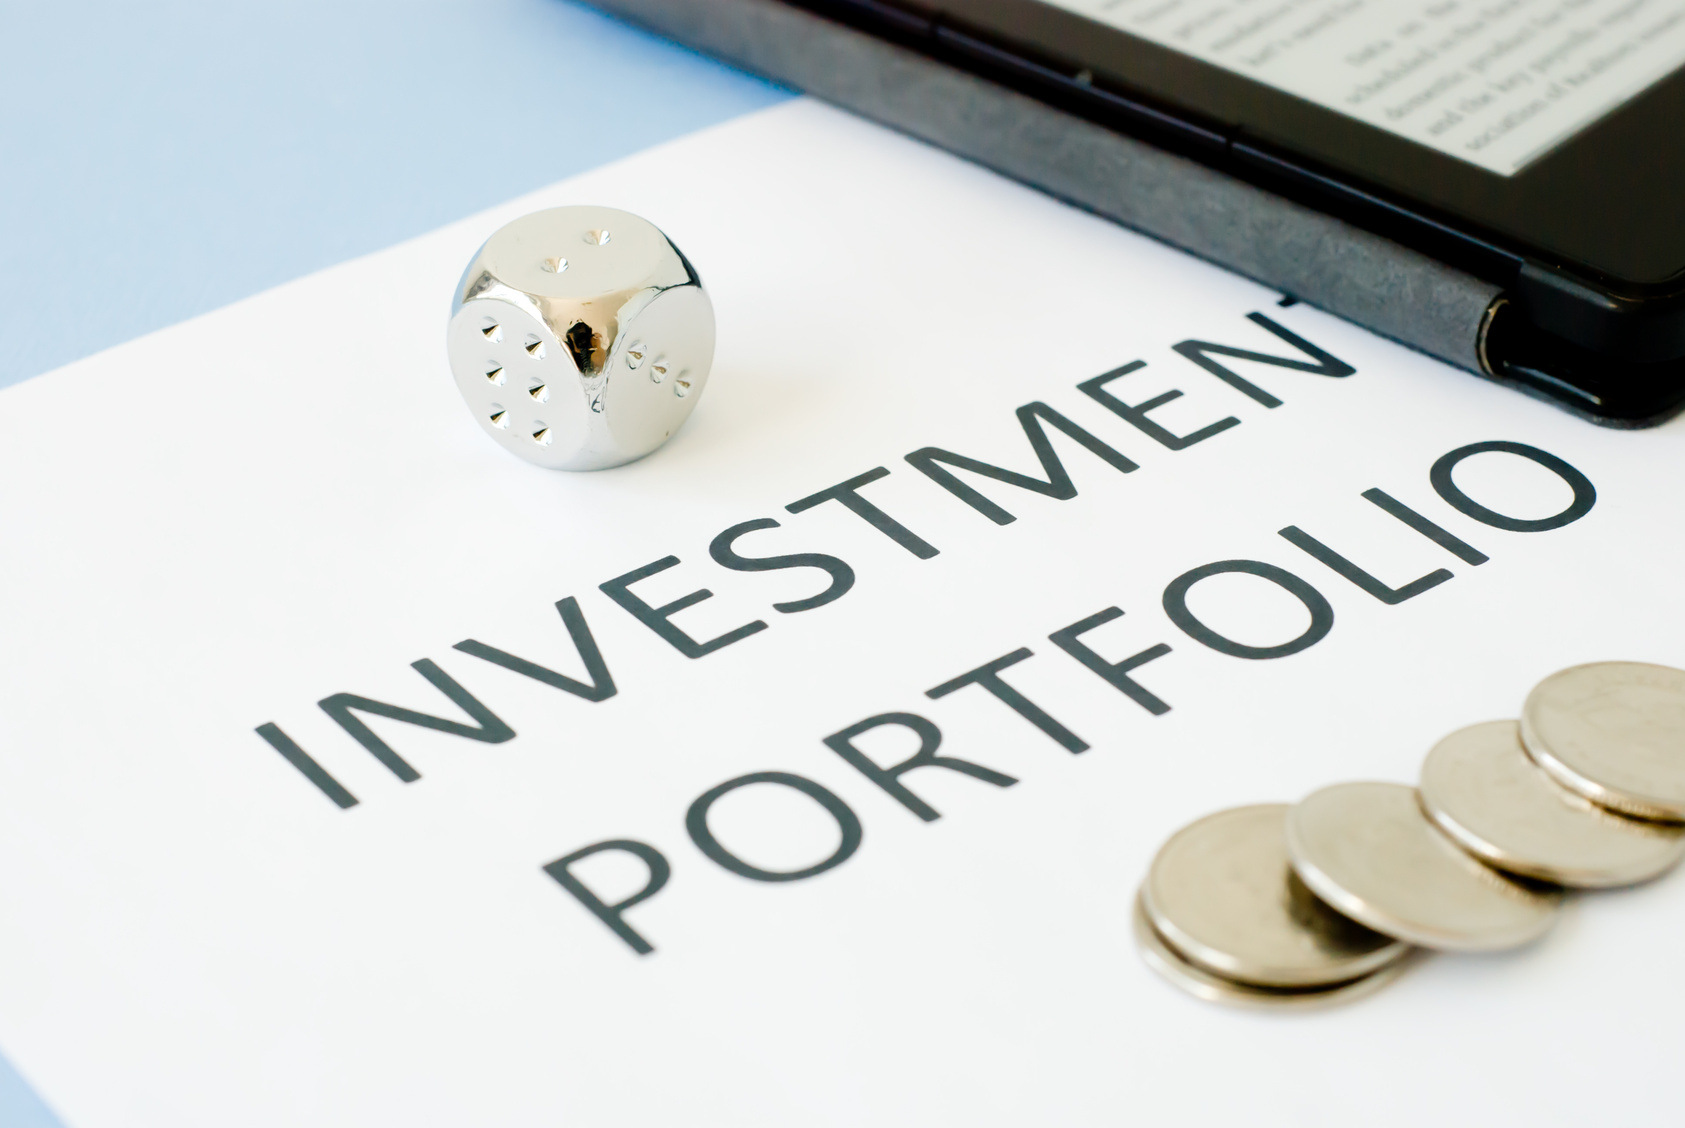 Enhancing your investment returns through etfs, while minimizing your risk